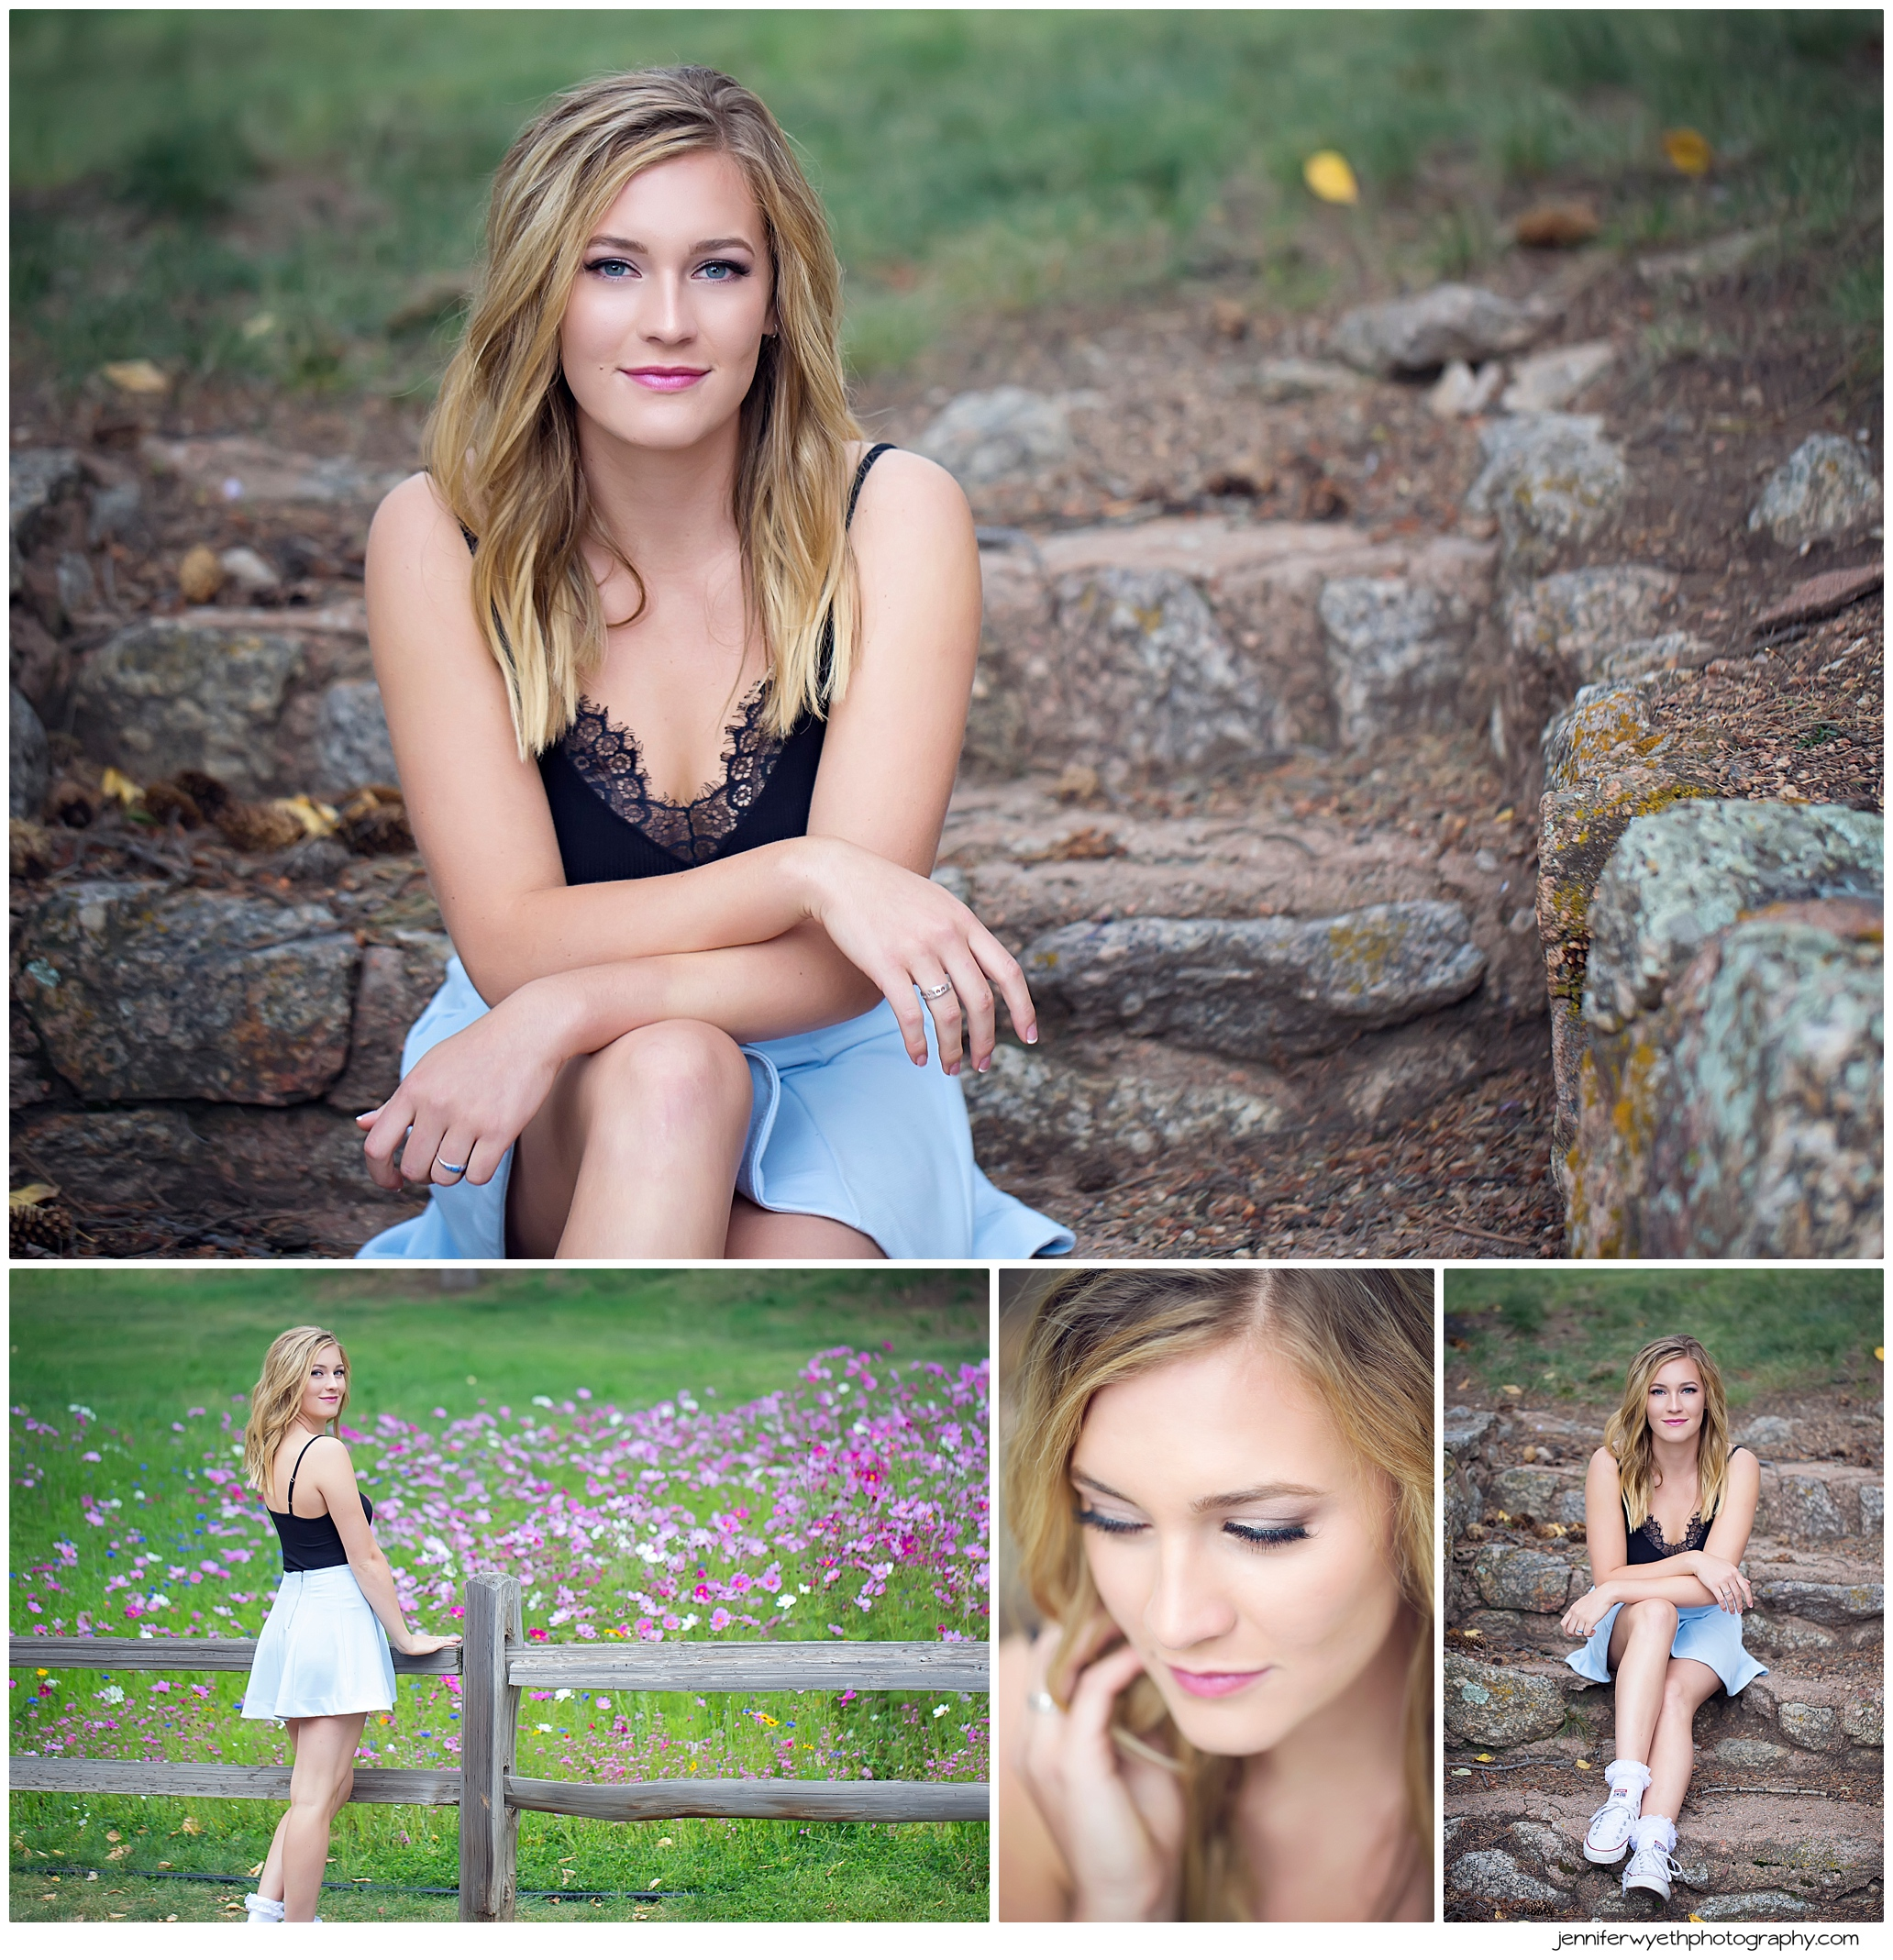 Jennifer-Wyeth-photography-senior-pictures-colorado-springs-photographer_0184.jpg